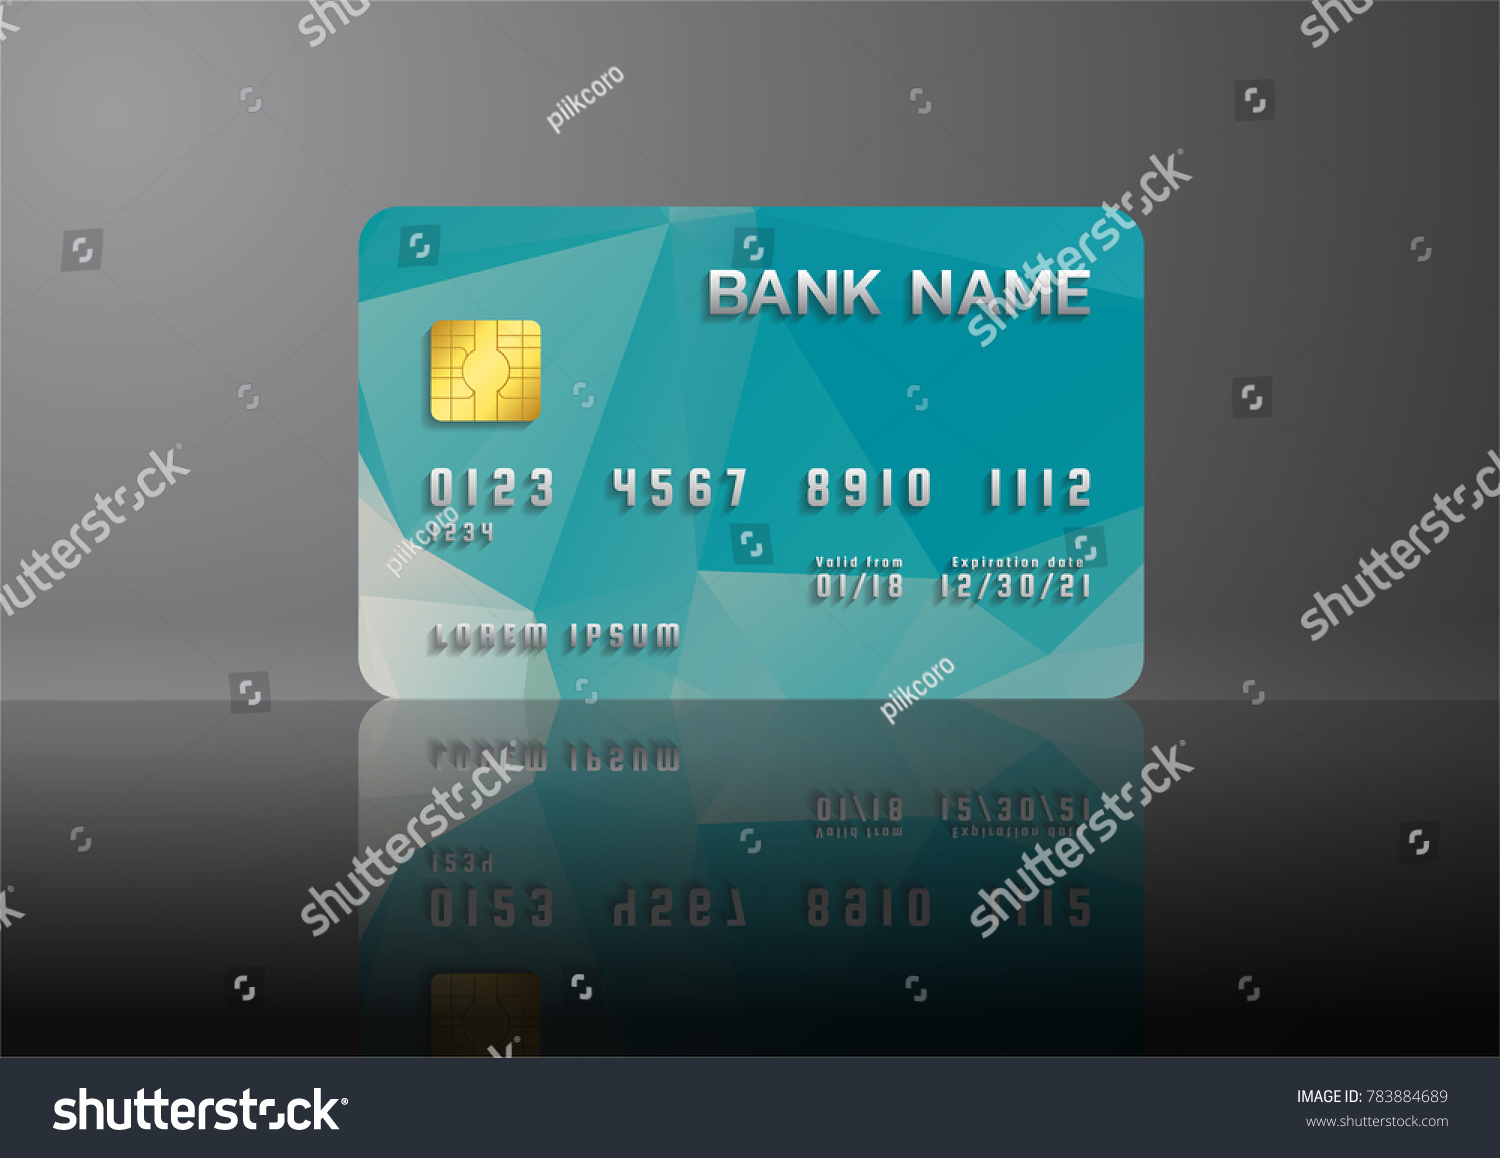 Business credit card without ssn image collections card design and fancy business credit card without social security number festooning business credit card without personal ssn gallery reheart Image collections